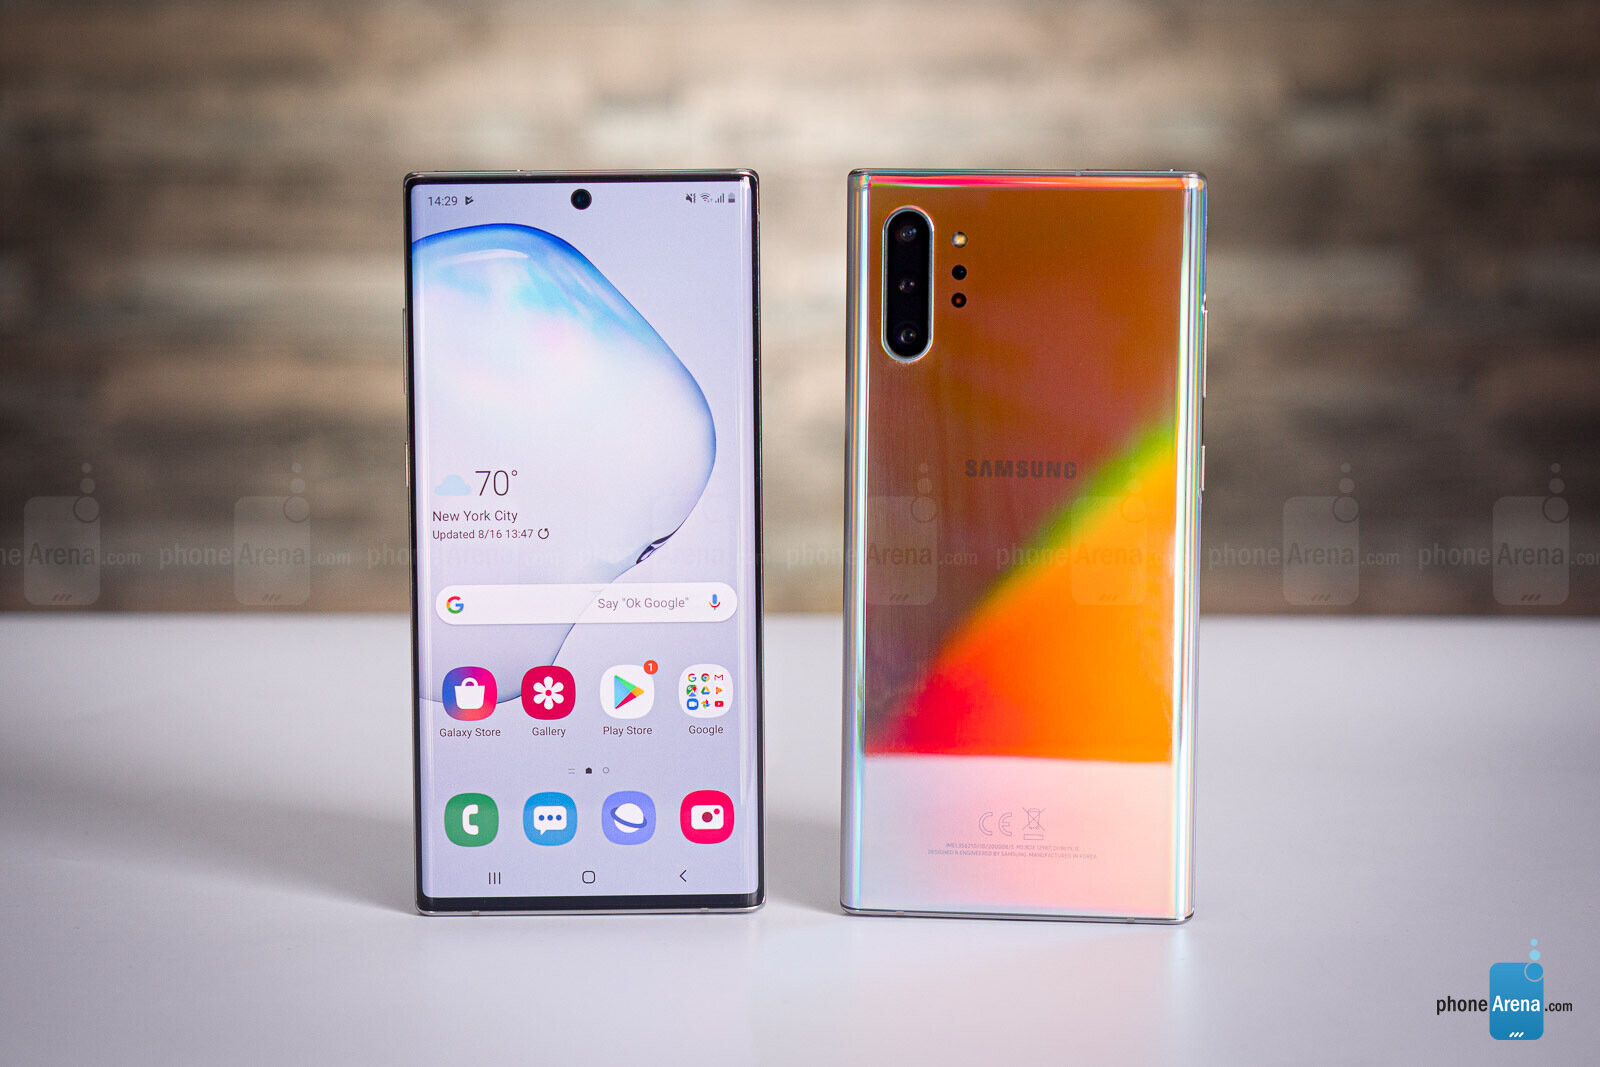 Samsung Galaxy Note 10+ Review - PhoneArena